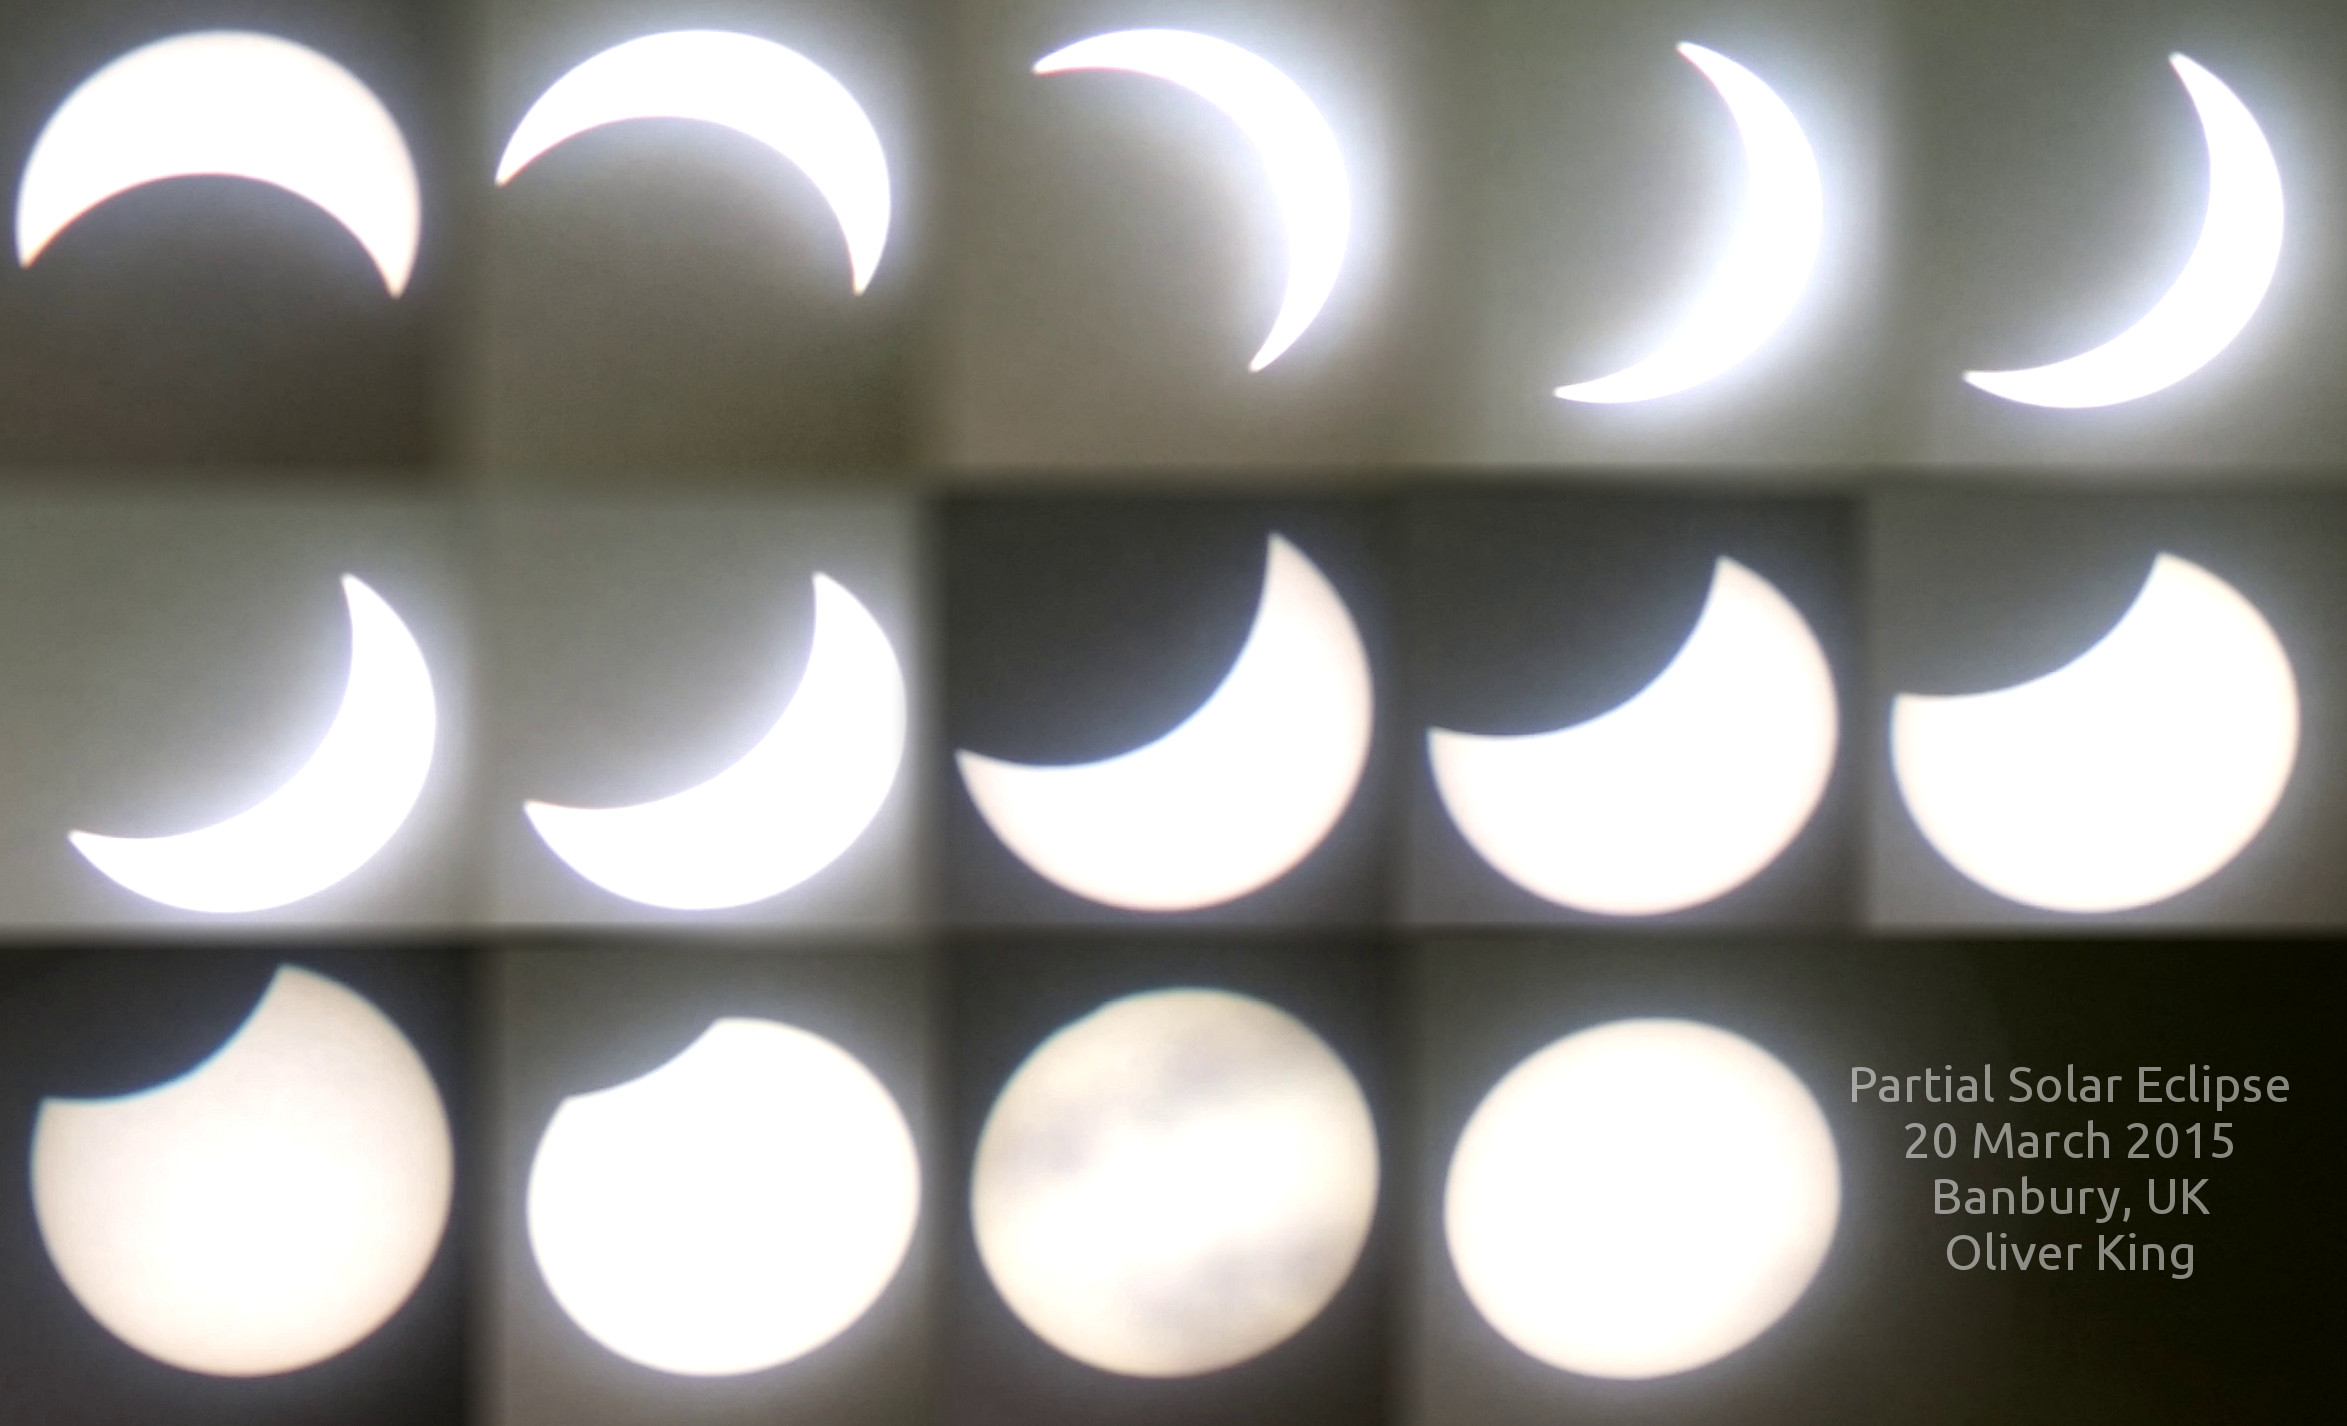 The eclipse by HCO member Oliver King